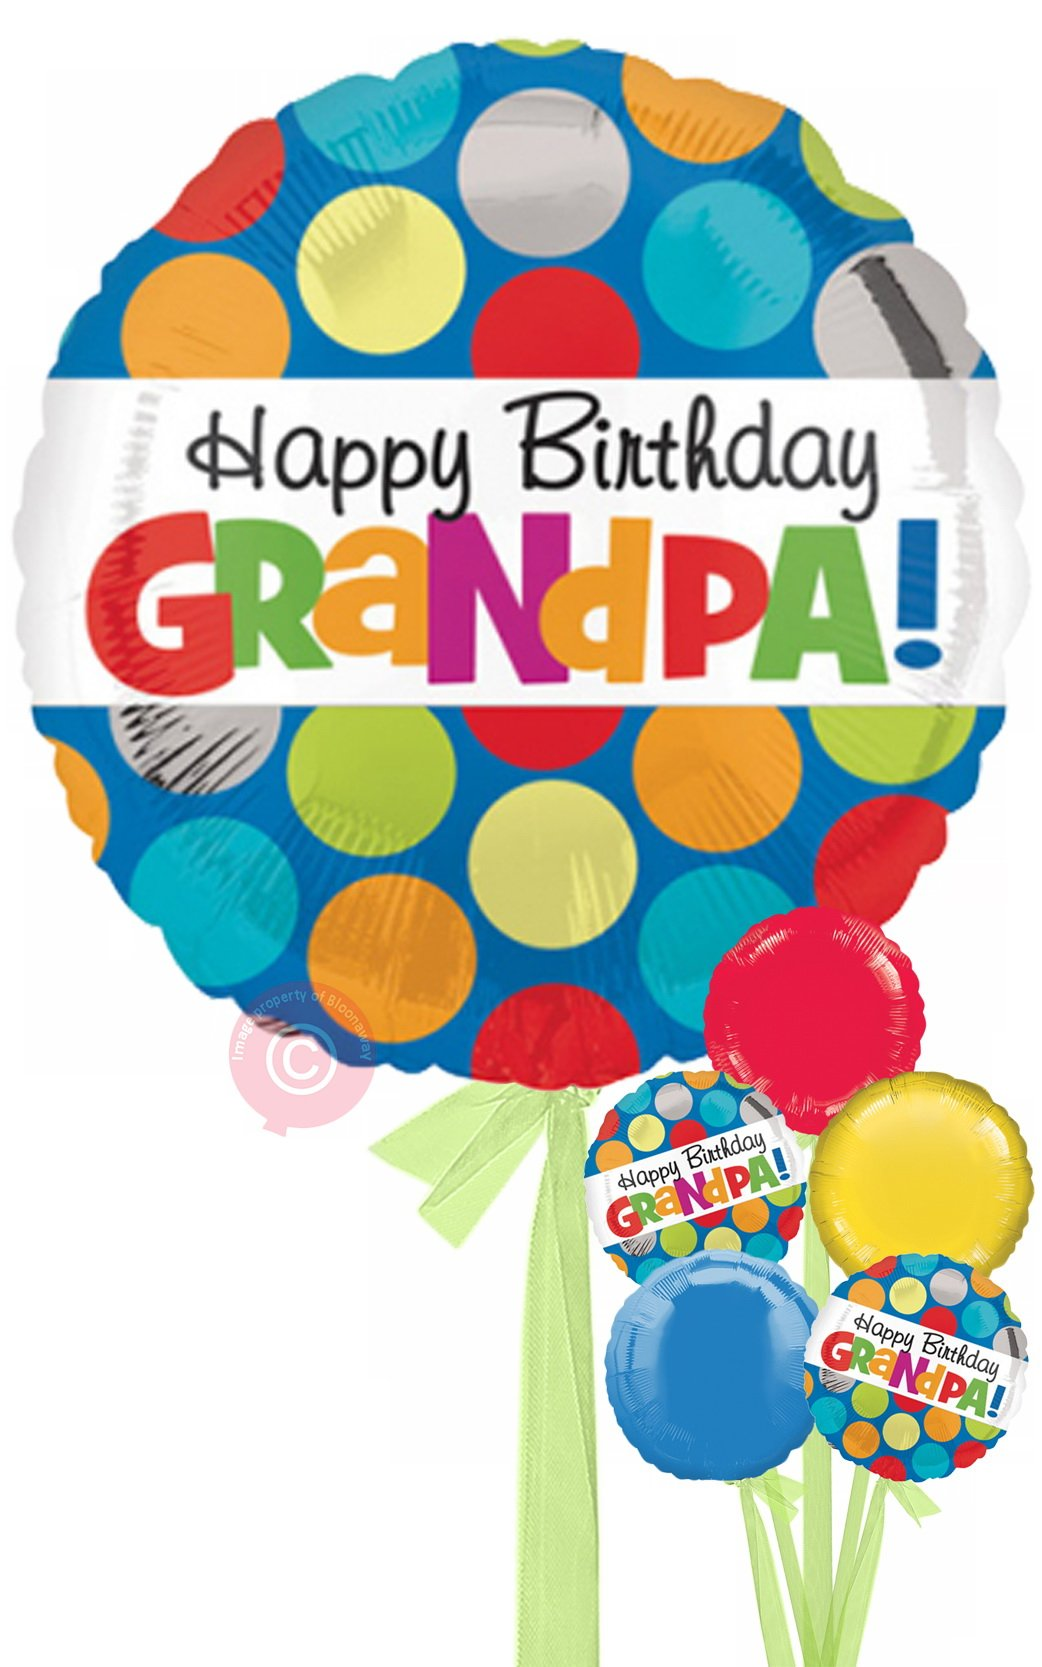 Personalised Polka Dot Happy Birthday Grandpa Balloons Delivered Inflated